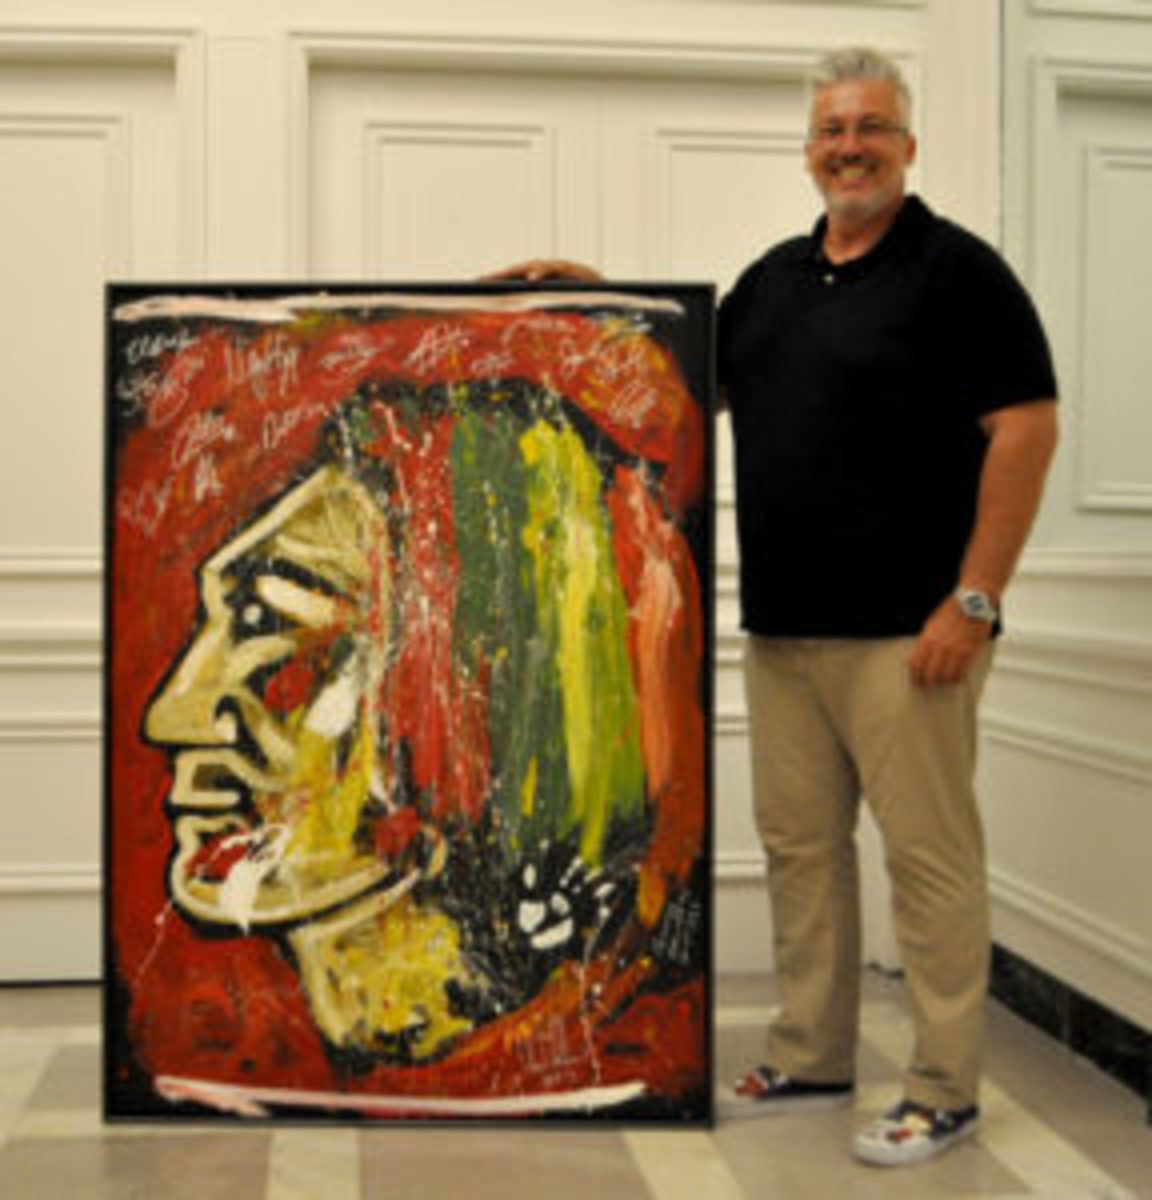 Lower attendance at this year's Convention encouraged fan Don Metter to bring along his 5-foot Blackhawks logo painting to get autographed.